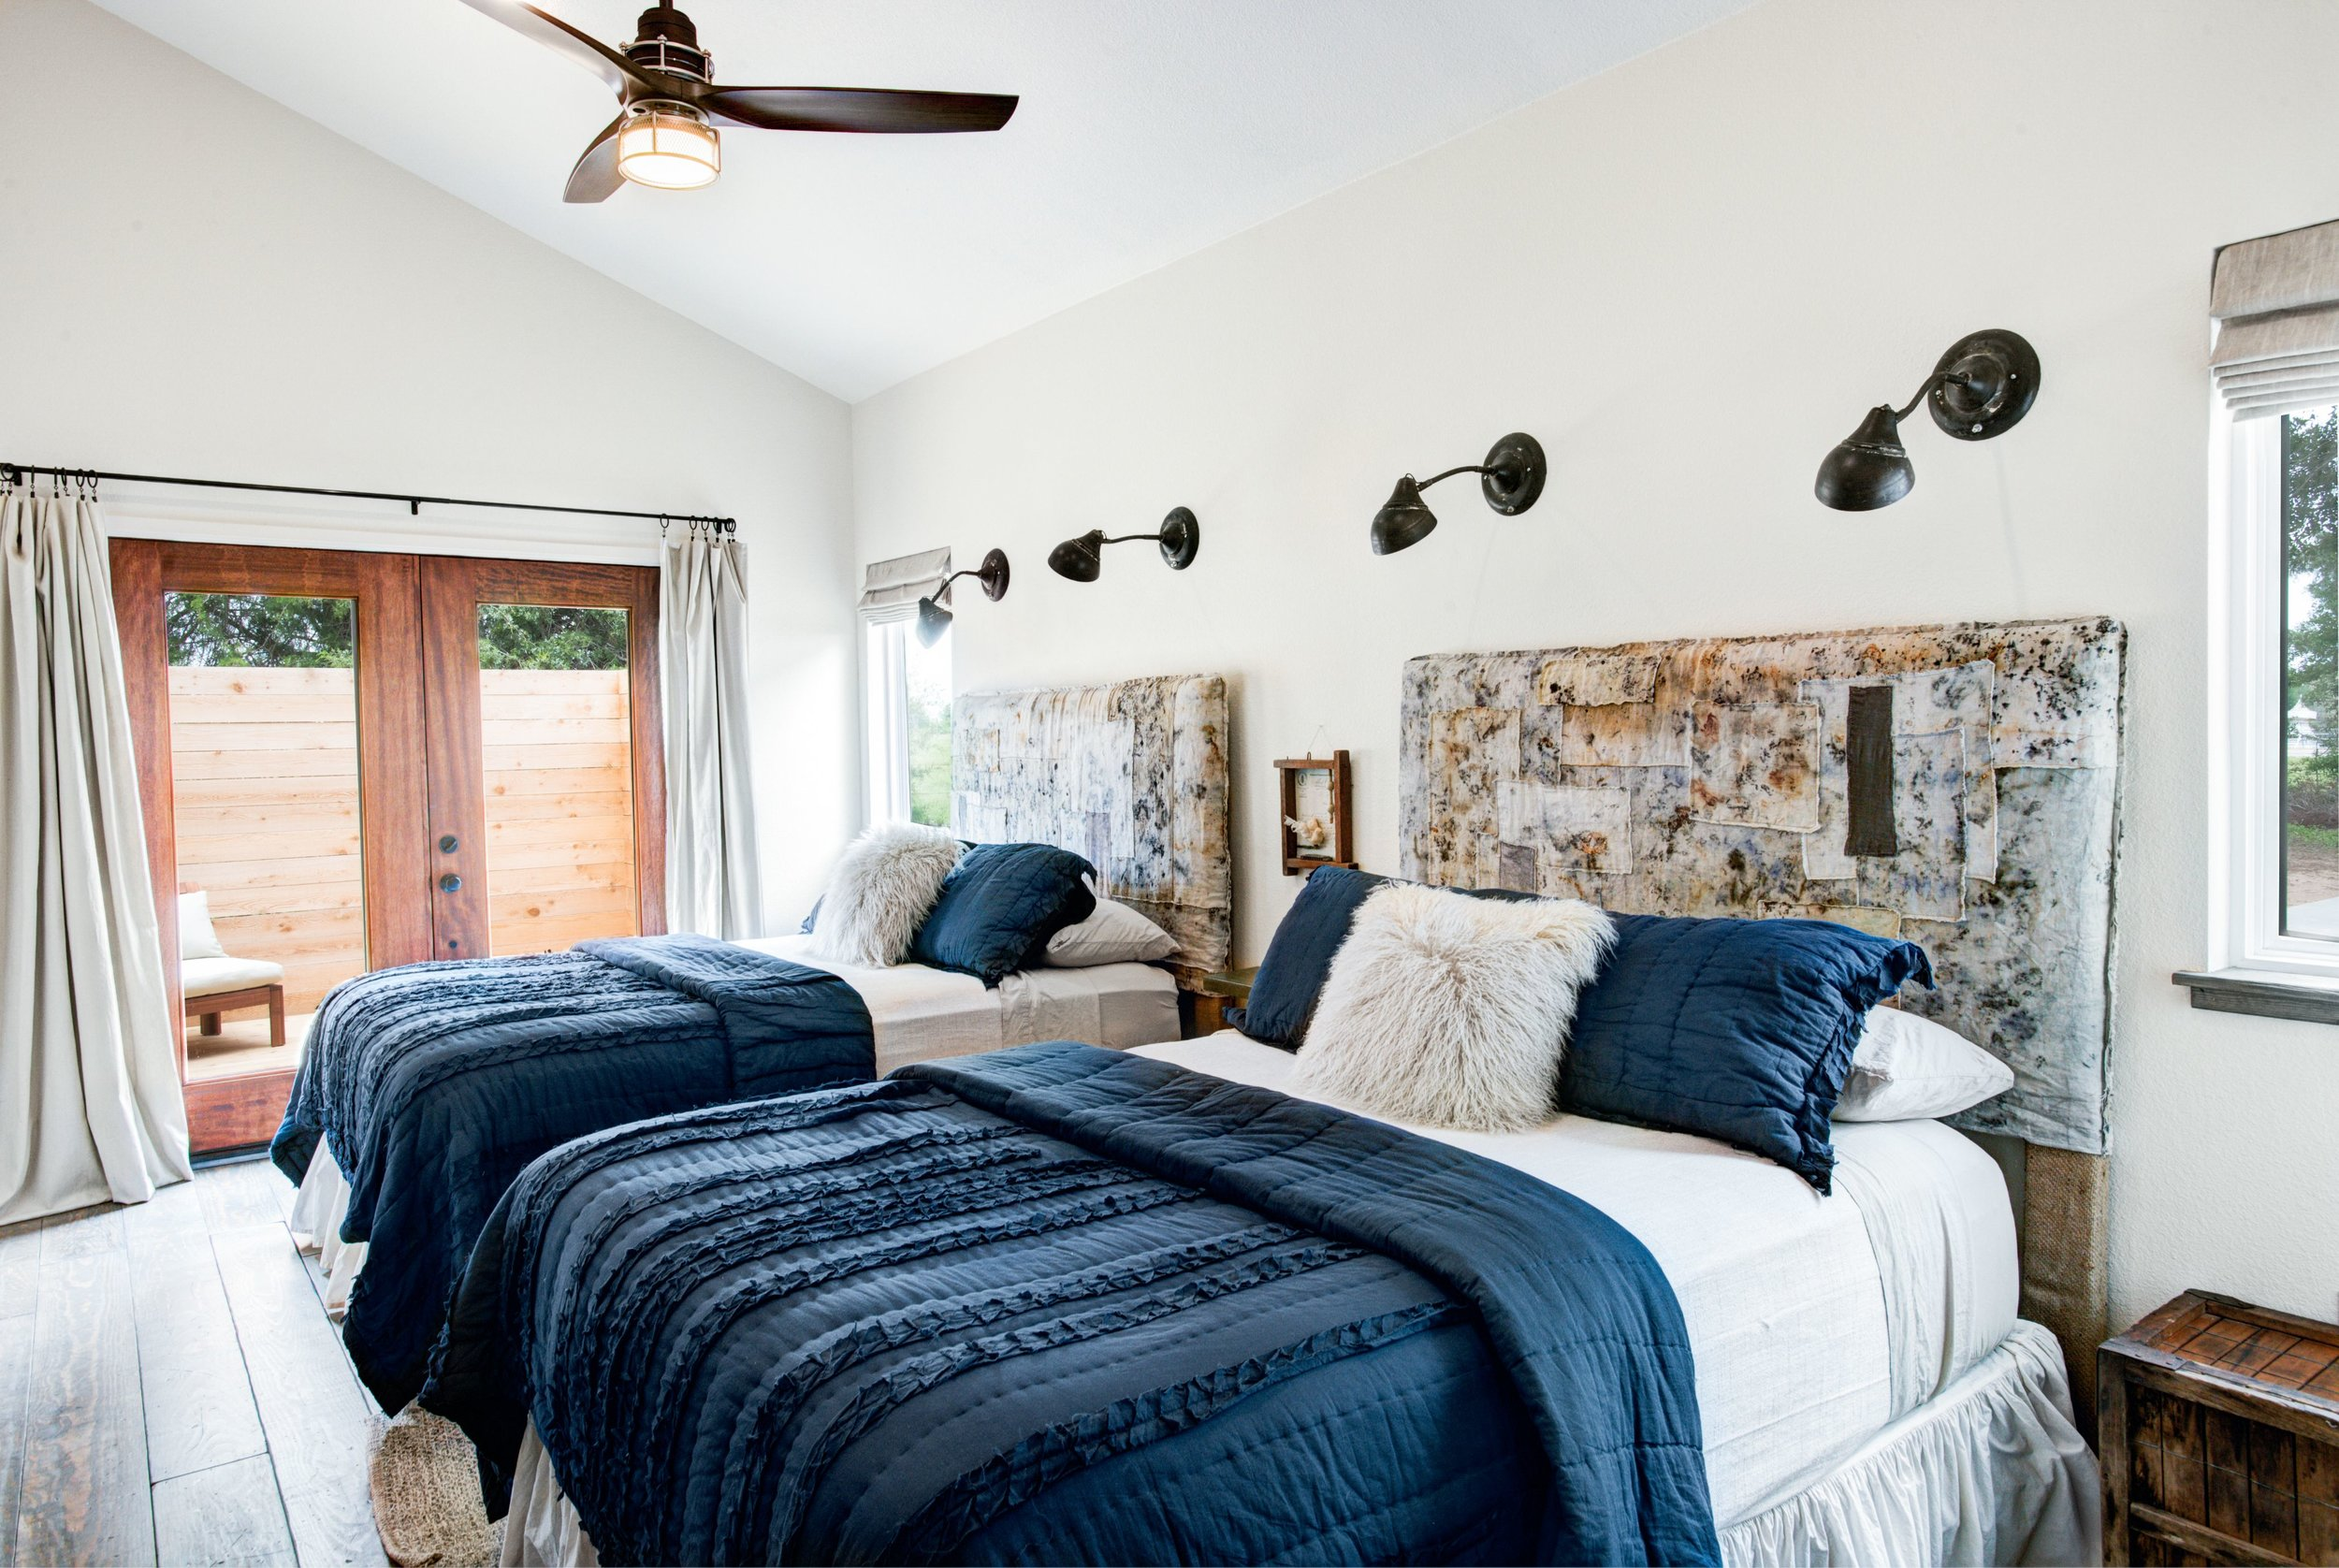 The Boho guest bedroom features two queen-sized bed, ensuite full bath with soaking tub and shower, and a private ensuite patio.